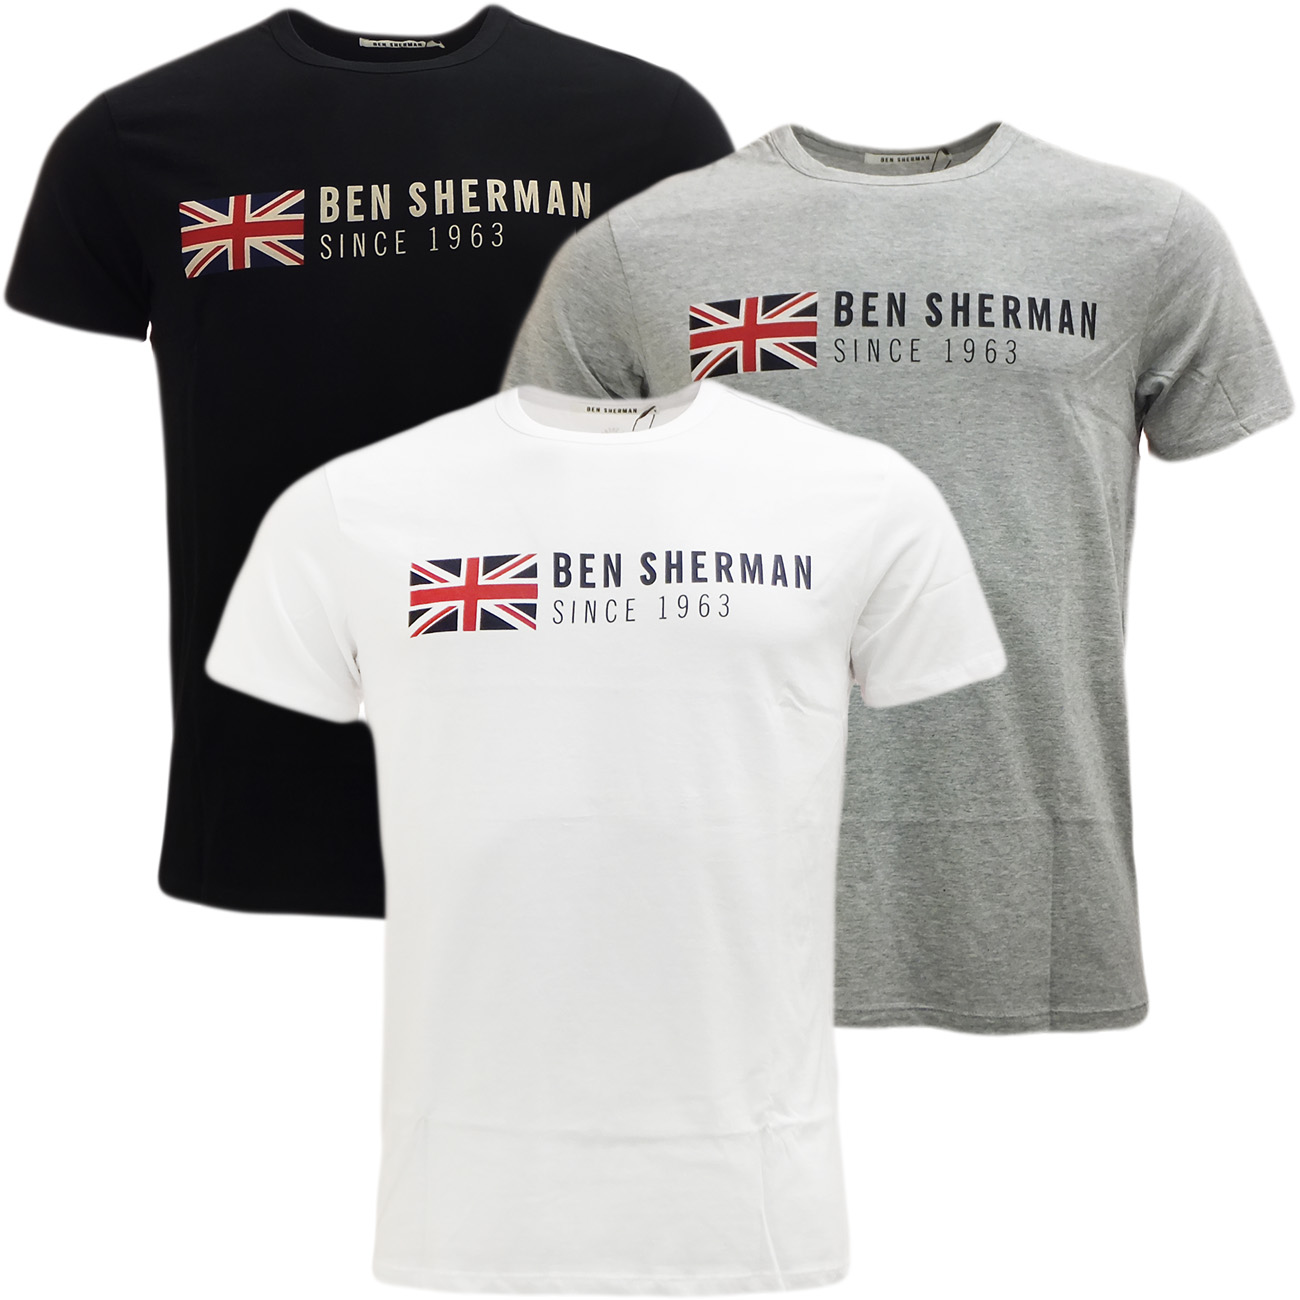 mens tshirts ben sherman union jack t shirt mod retro